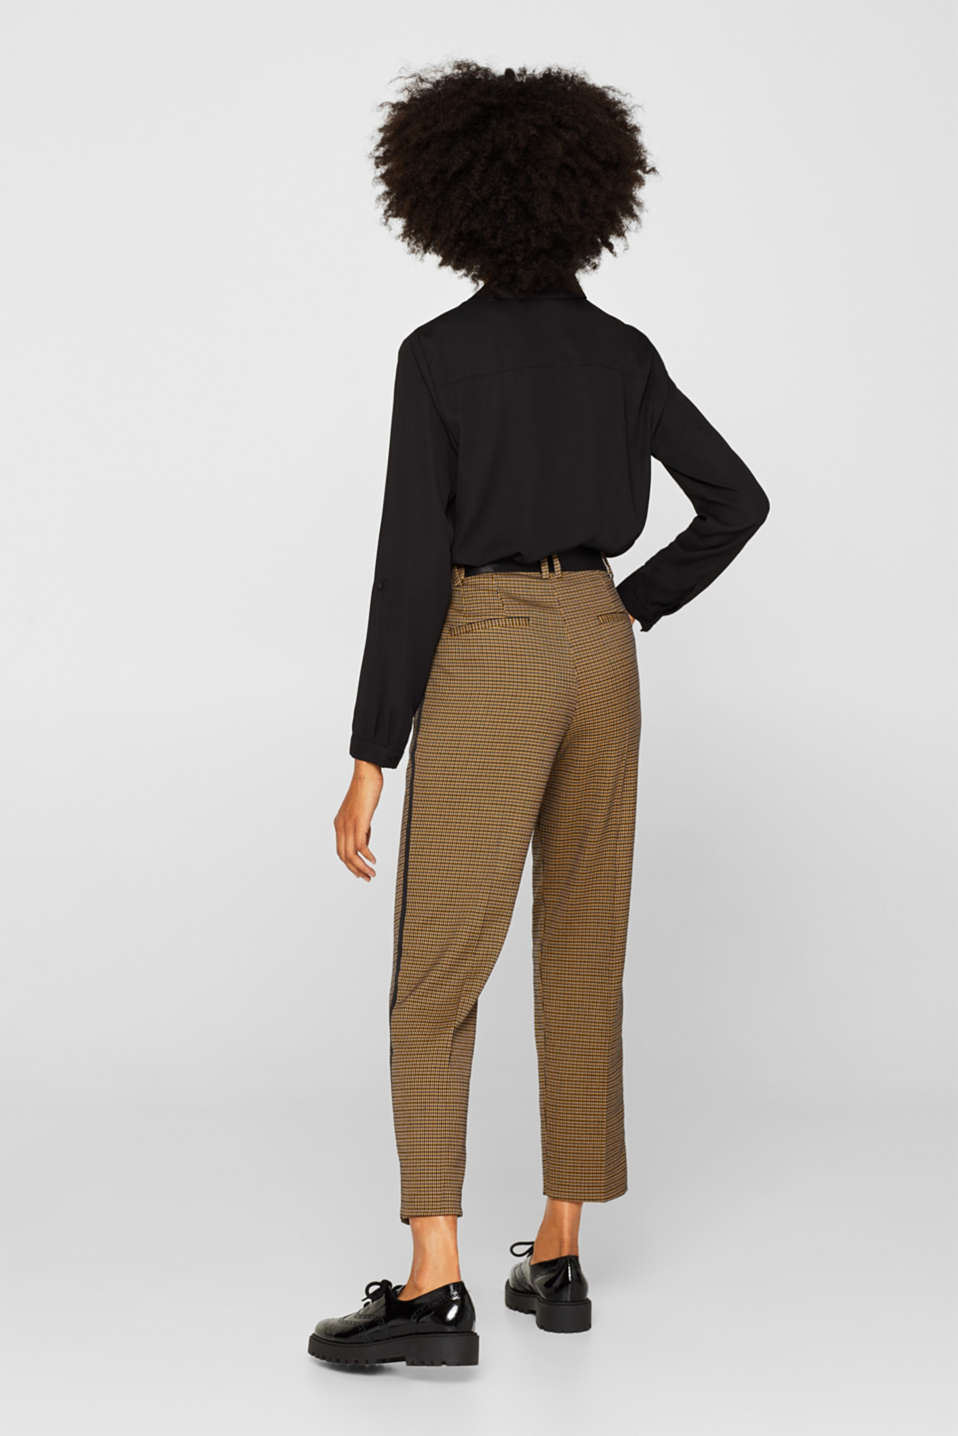 Stretch trousers with a houndstooth pattern and racing stripes, BARK, detail image number 3